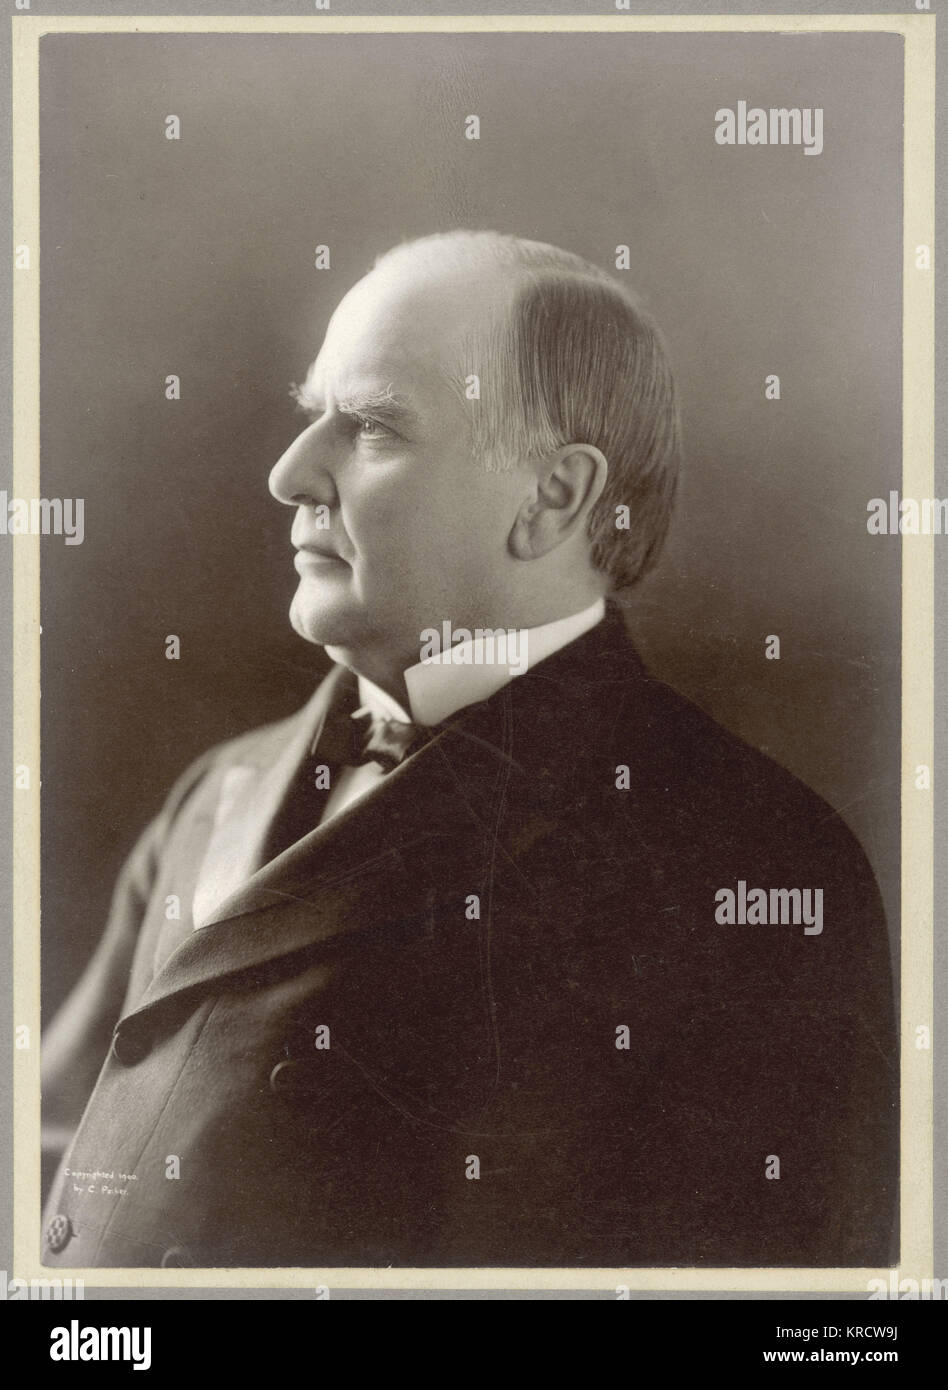 WILLIAM MCKINLEY (1843 - 1901), Photographic portrait of William Mckinley, 25th President of the United States. - Stock Image